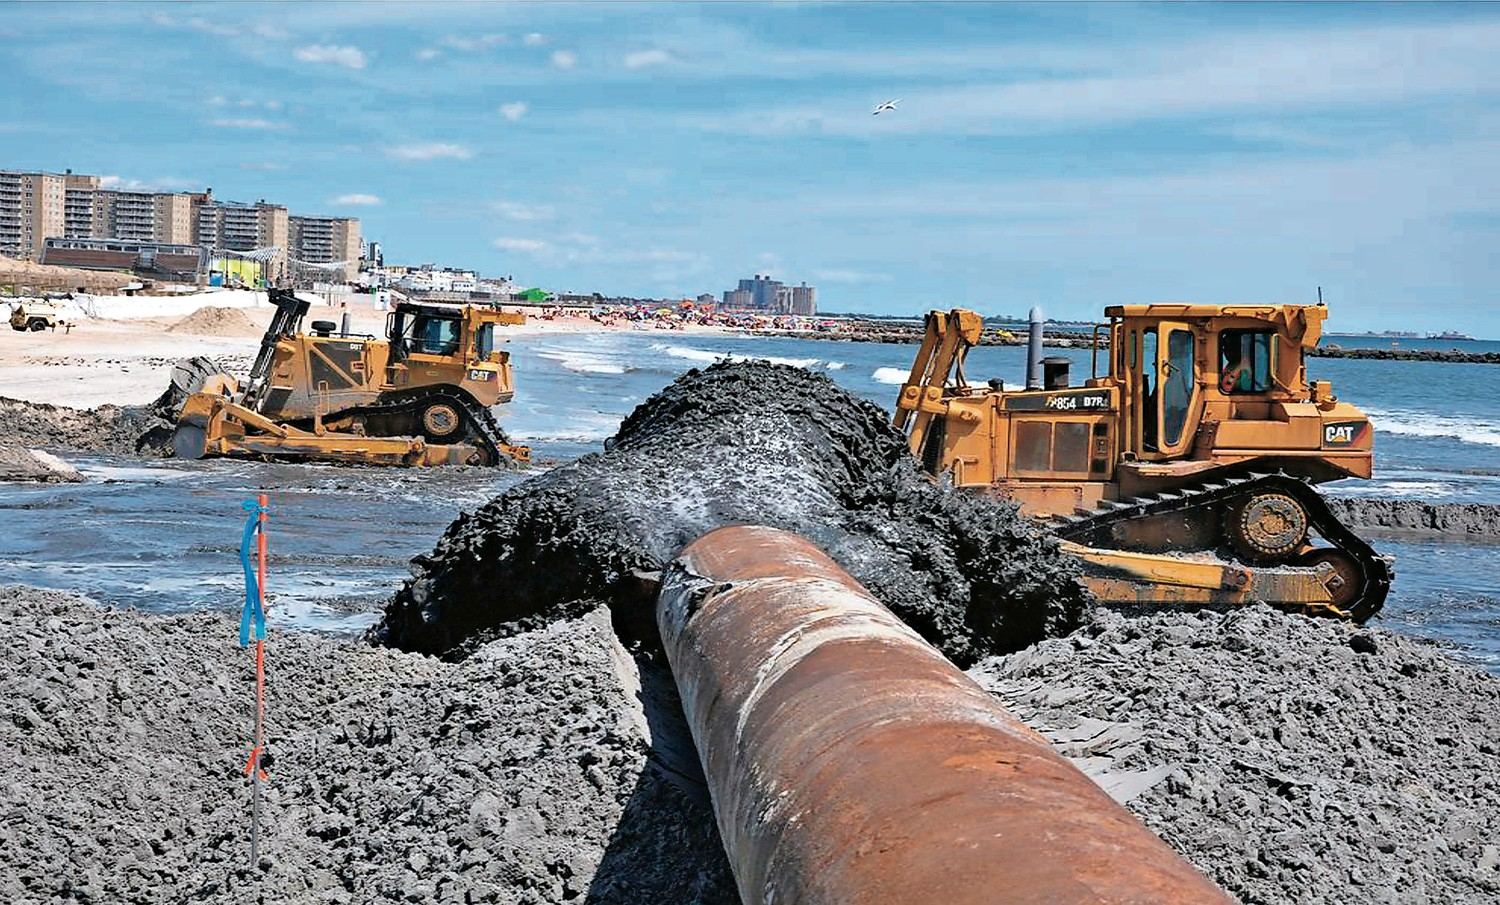 A previous sand-replenishment project in Rockaway Beach in 2013, pictured, shows the process of hydraulically pumping sand onto the beach.